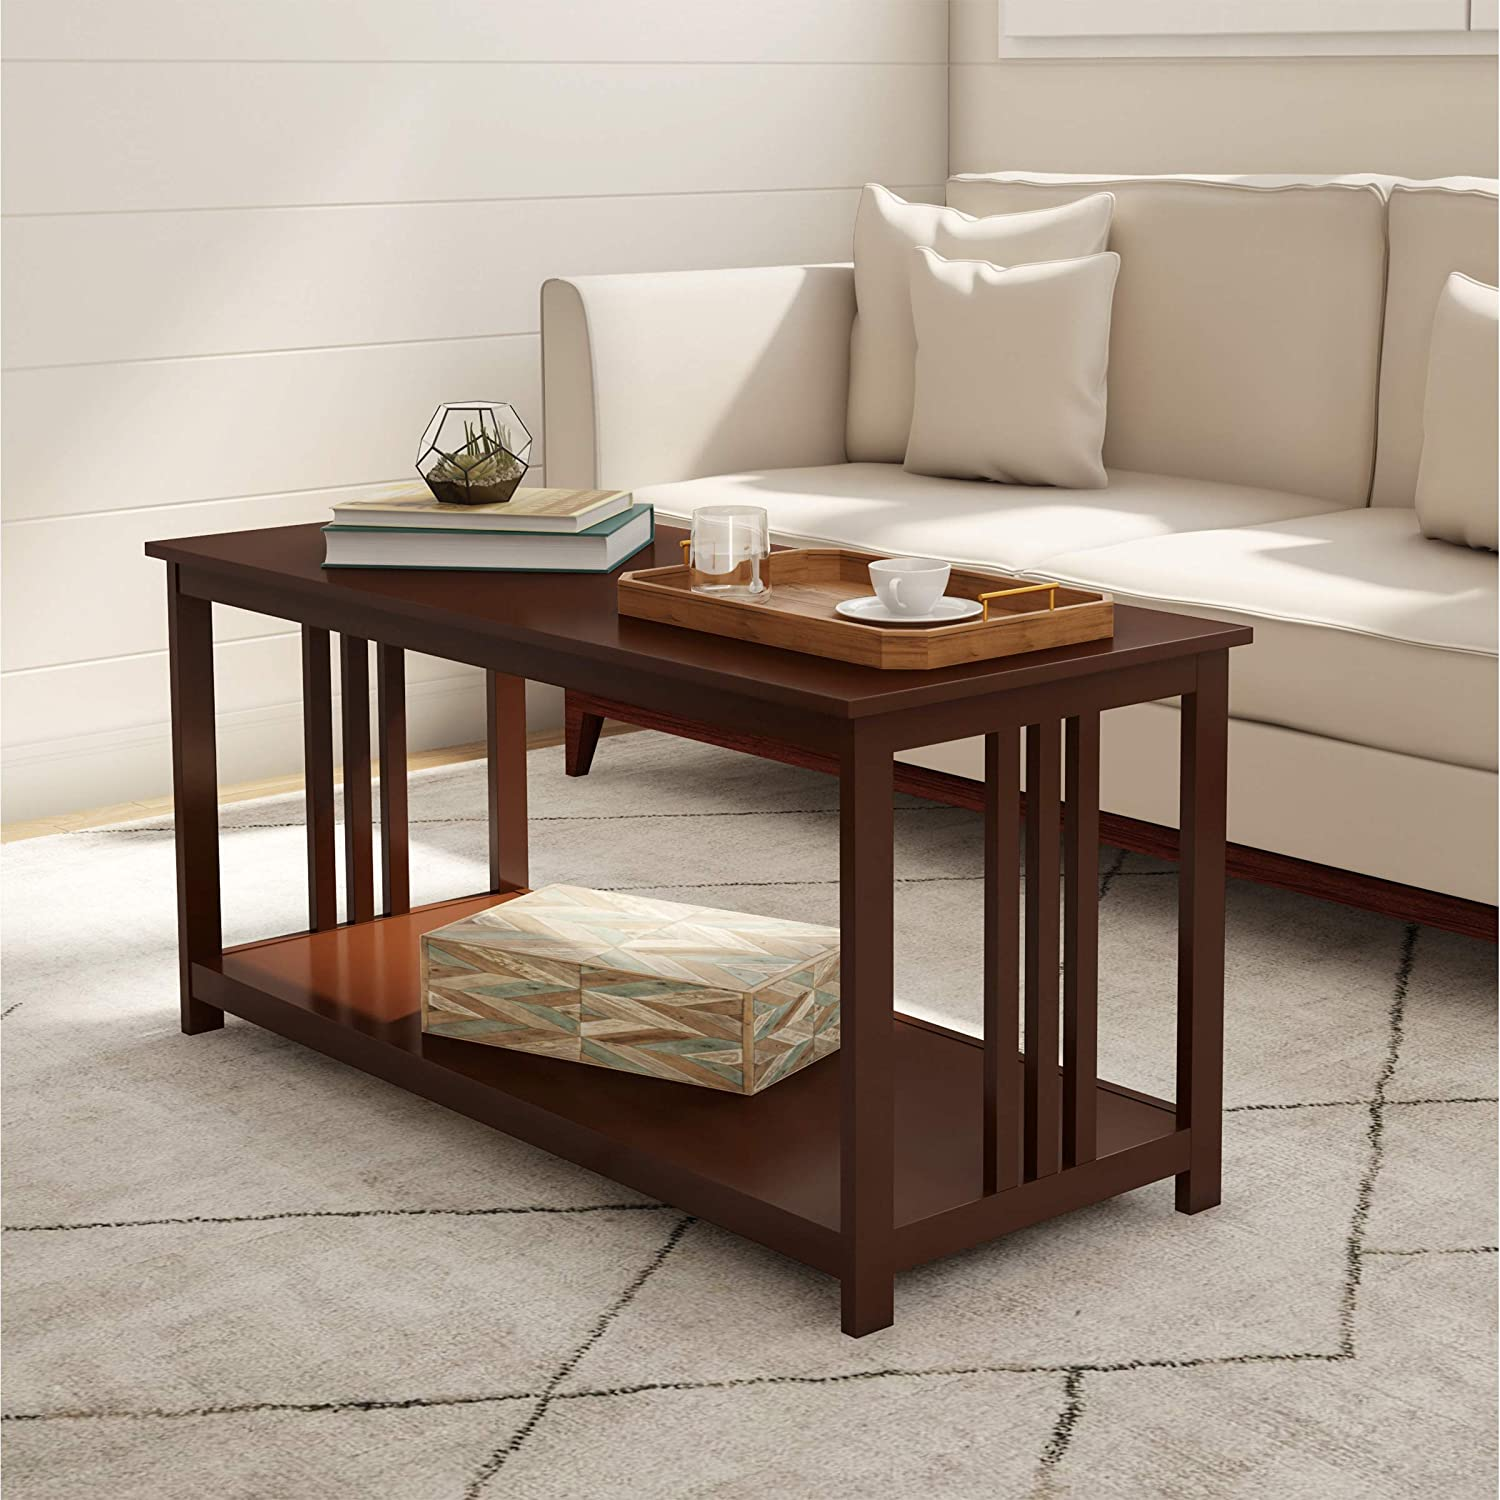 Lavish Home (Brown) Coffee 2 Tier Mission Style Sofa Table